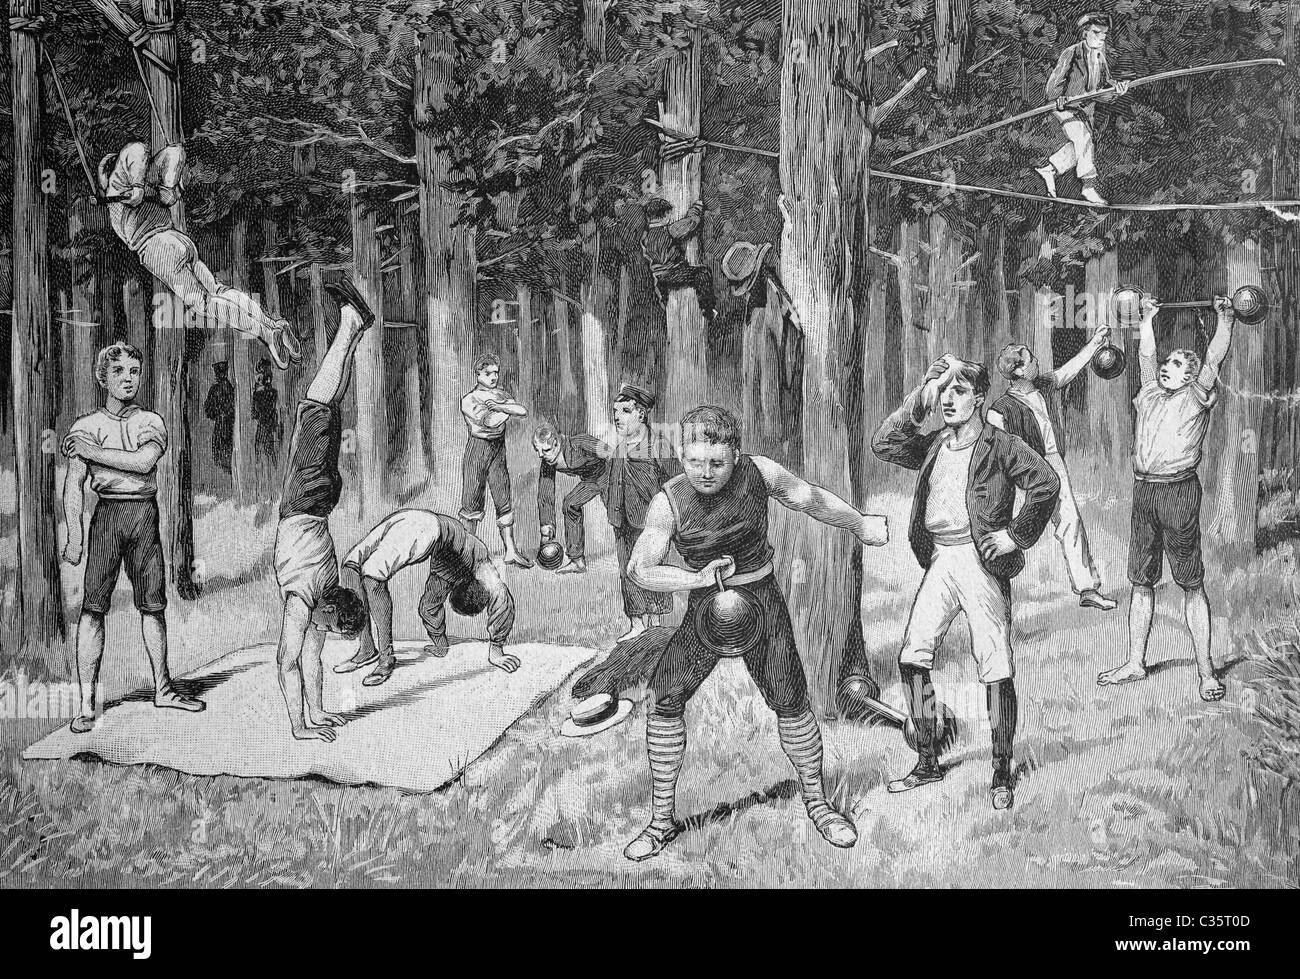 Training area of prospective artists in the Hasenheide park, near Berlin, Germany, historical picture, about 1893 - Stock Image